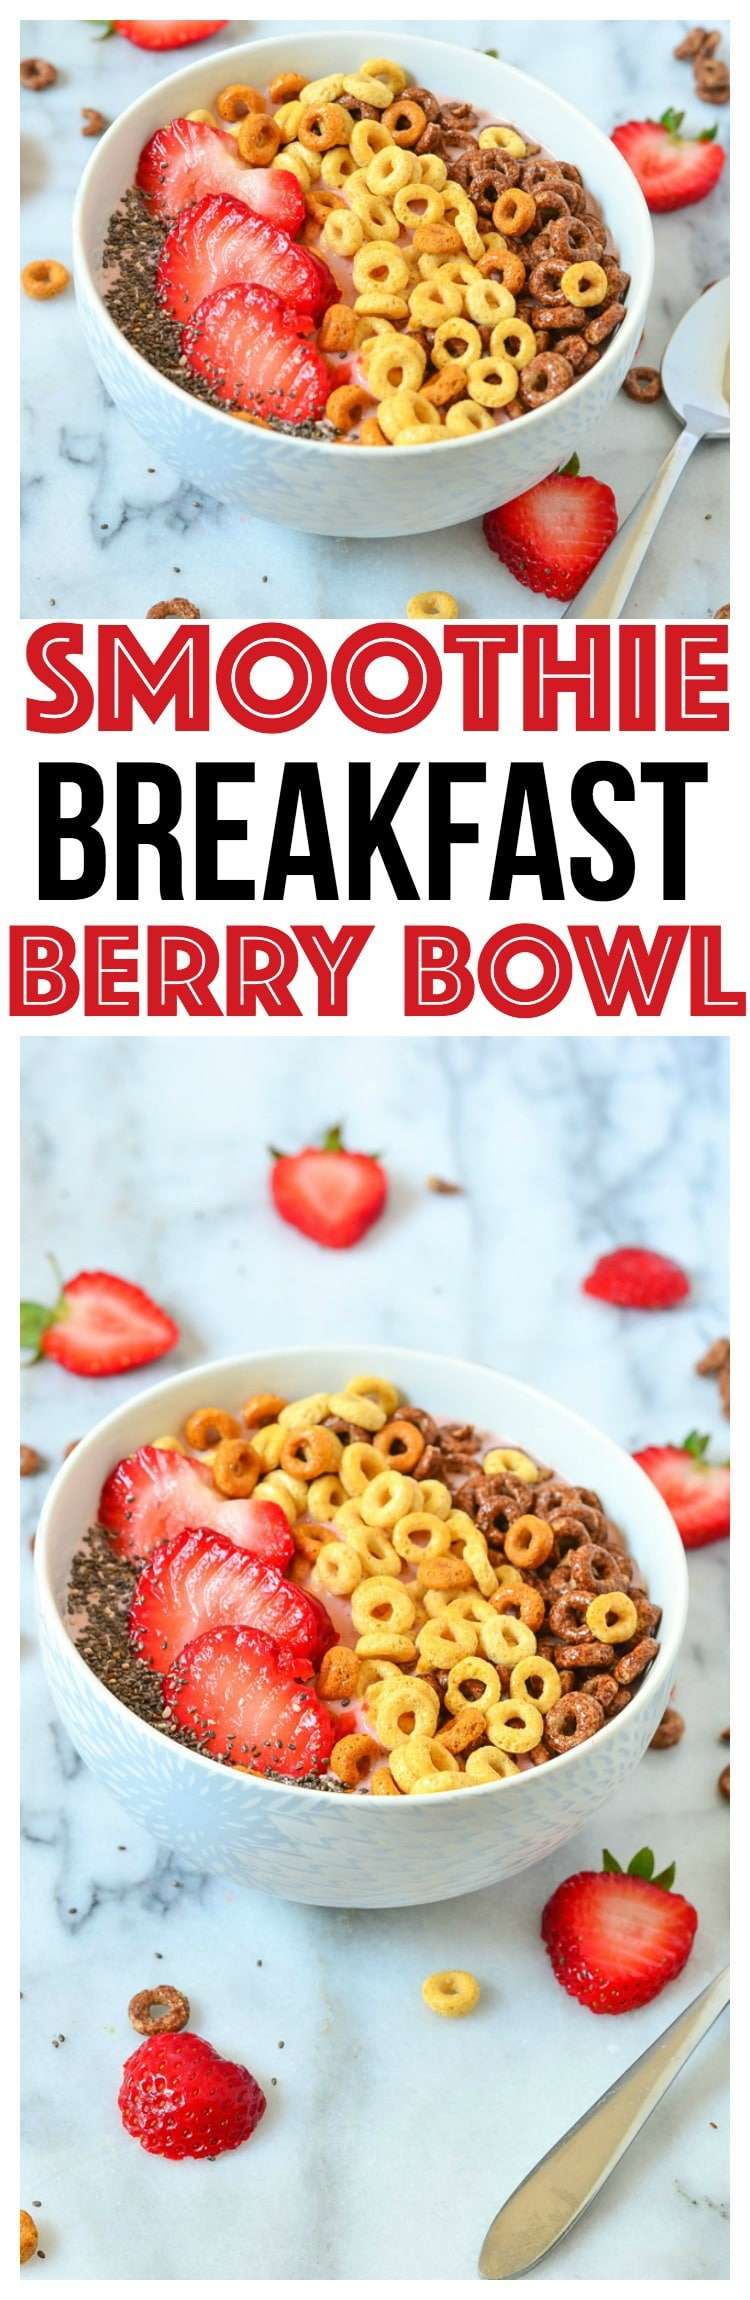 Breakfast Bowl Recipe | Strawberry Banana Smoothie berry smoothie bowl smoothie bowl recipe clean eating recipes clean eating for beginners